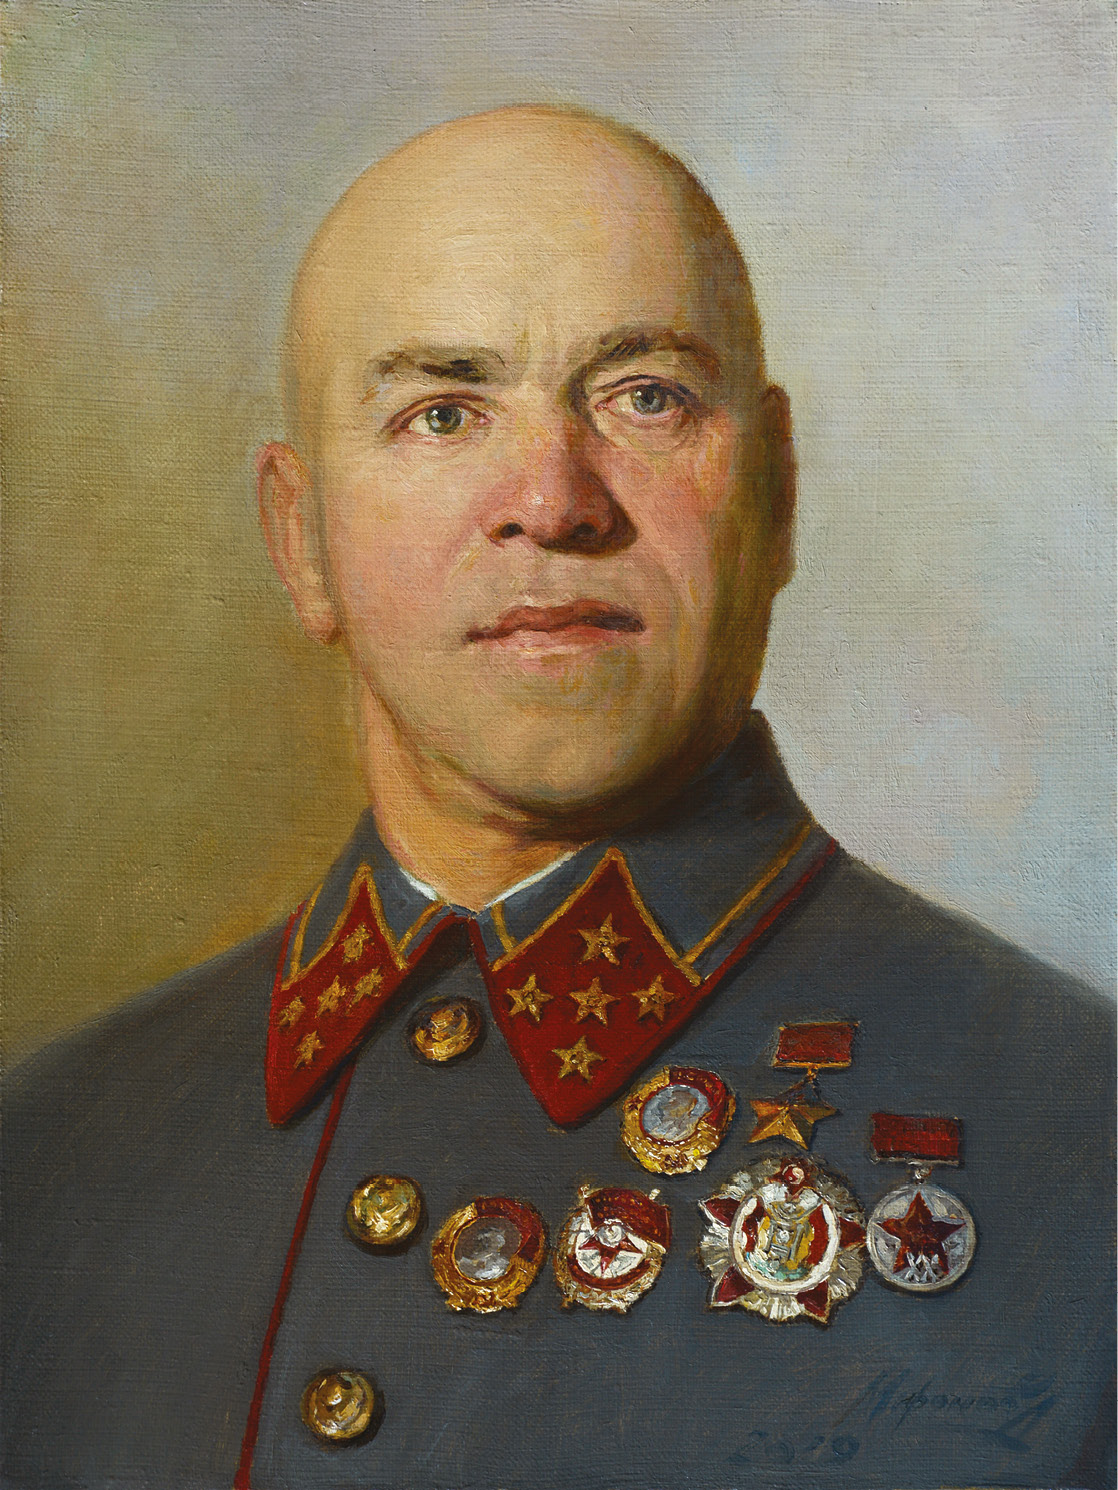 ABOVE left Marshal Georgy Zhukov (1896-1974), commander of 1st Belorussian Front. ABOVE RIGHT Marshal Ivan Koniev (1897-1973), commander of 1st Ukrainian Front. Zhukov and Koniev were competing for the honour of capturing the Nazi capital.